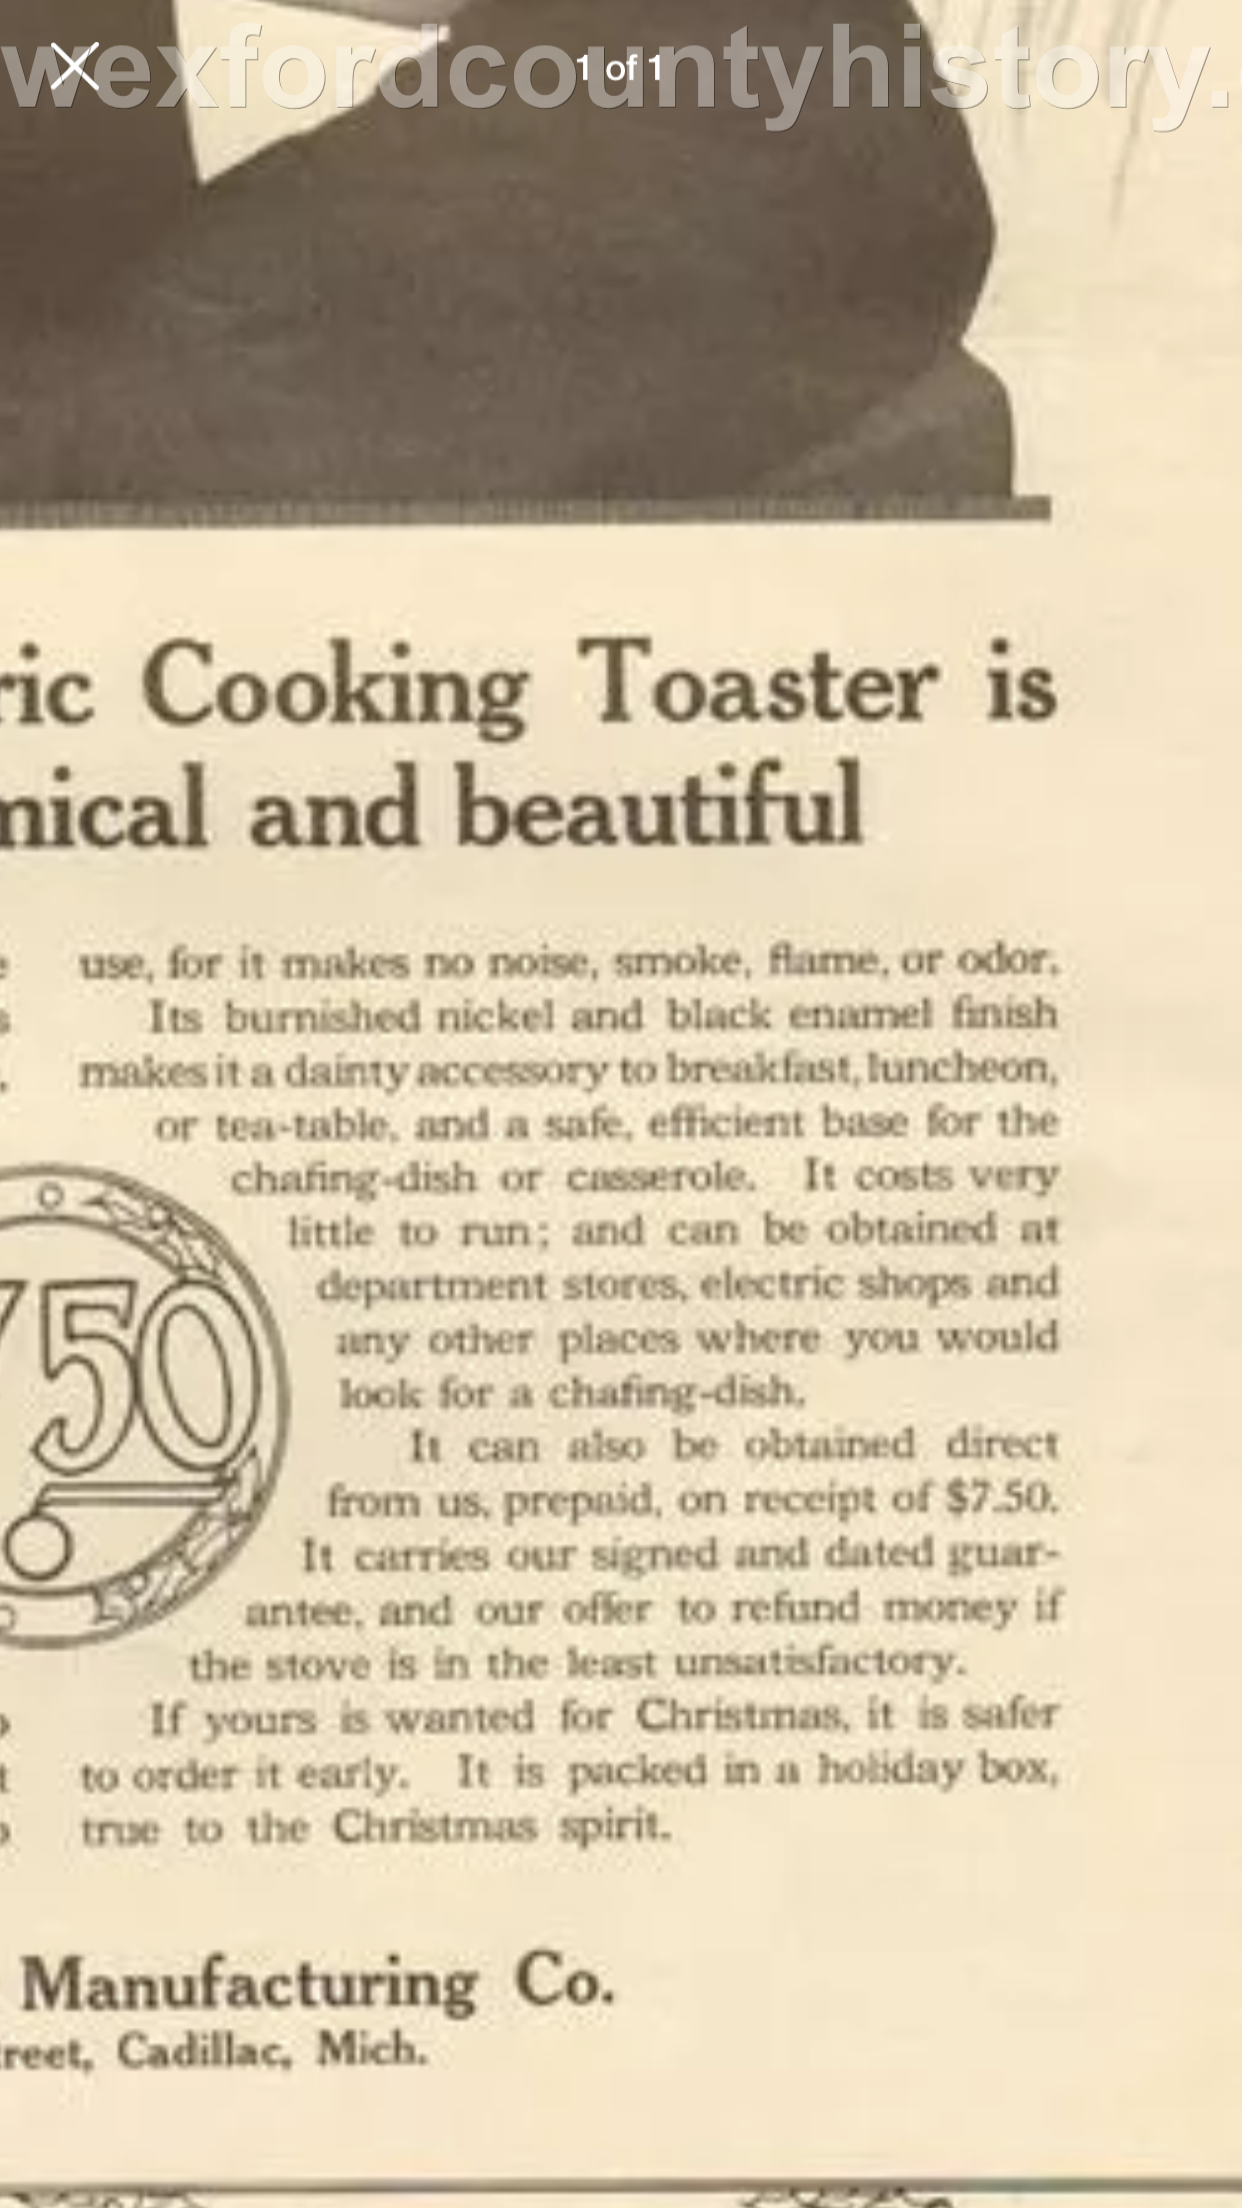 Cadillac-Business-Cadillac-Electric-Manufacturing-Company-Toaster-2